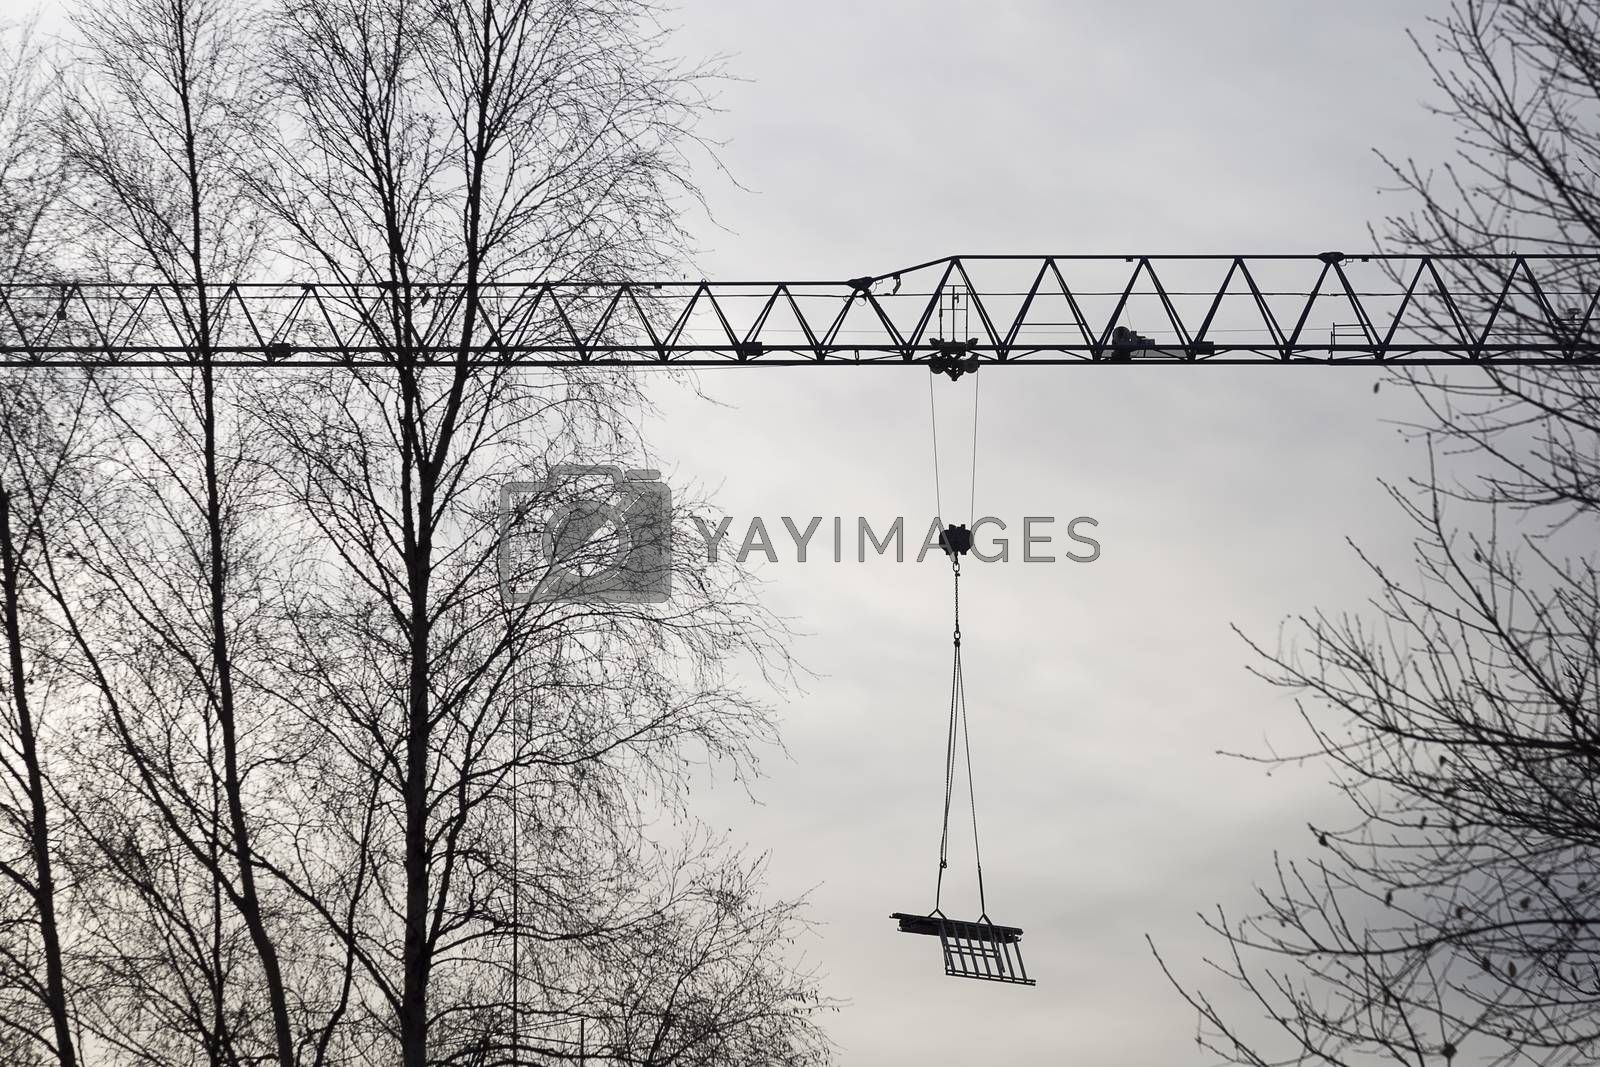 Royalty free image of Construction Crane with Trees by Emmoth